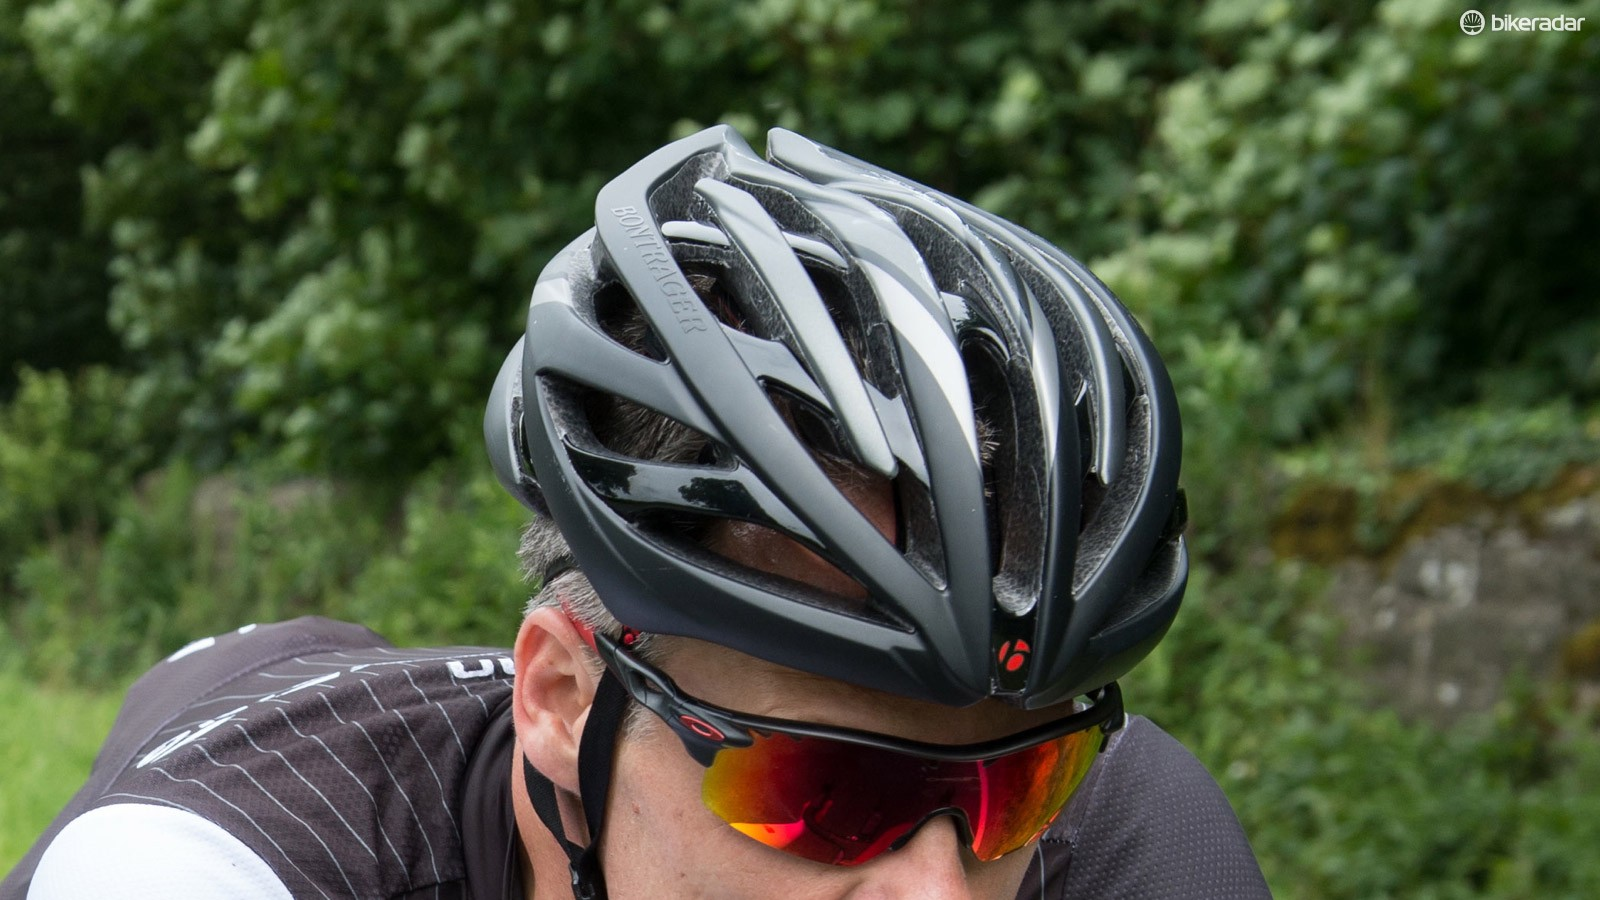 The Bontrager Velocis's good looks match its pleasing performance